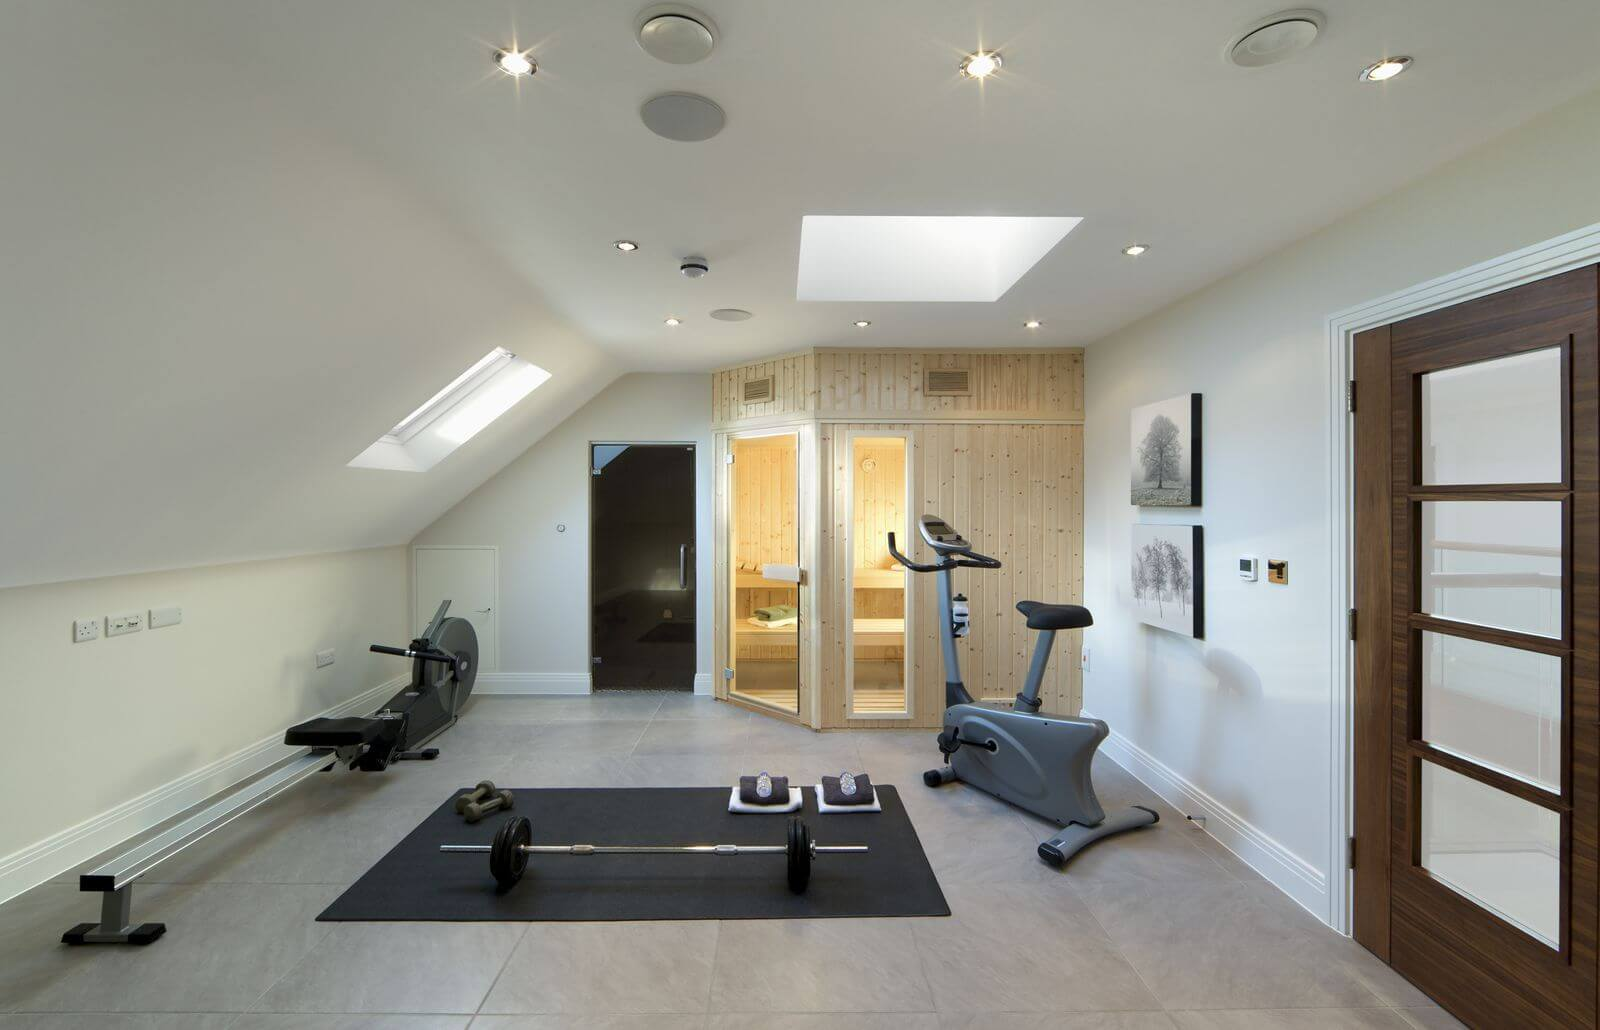 Concrete gym flooring